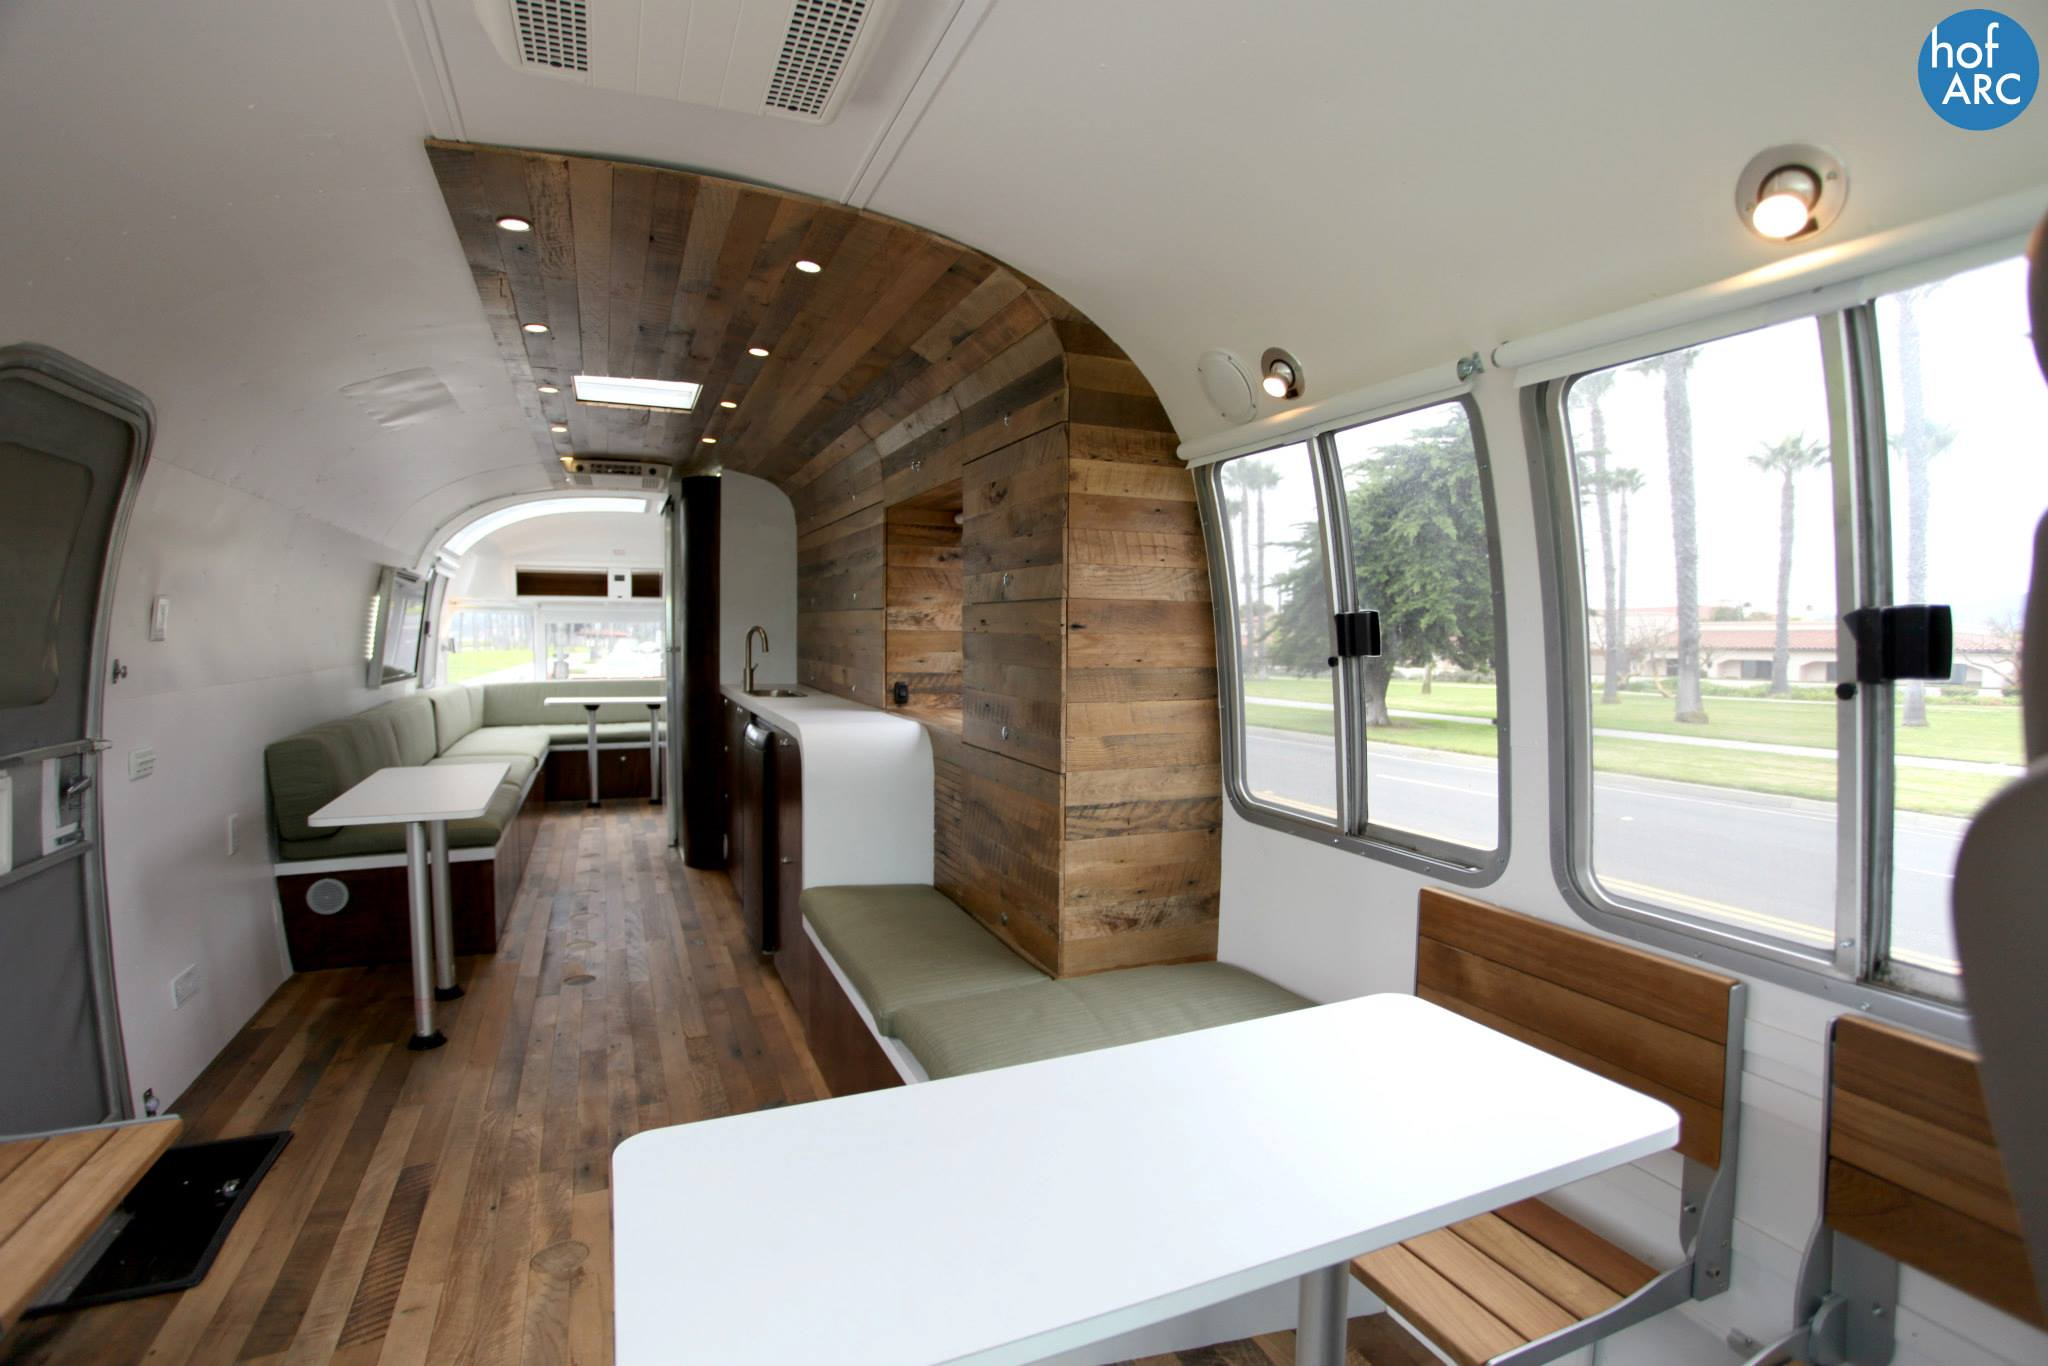 Motorhome interiors for sale with simple inspiration in Home interior pictures for sale